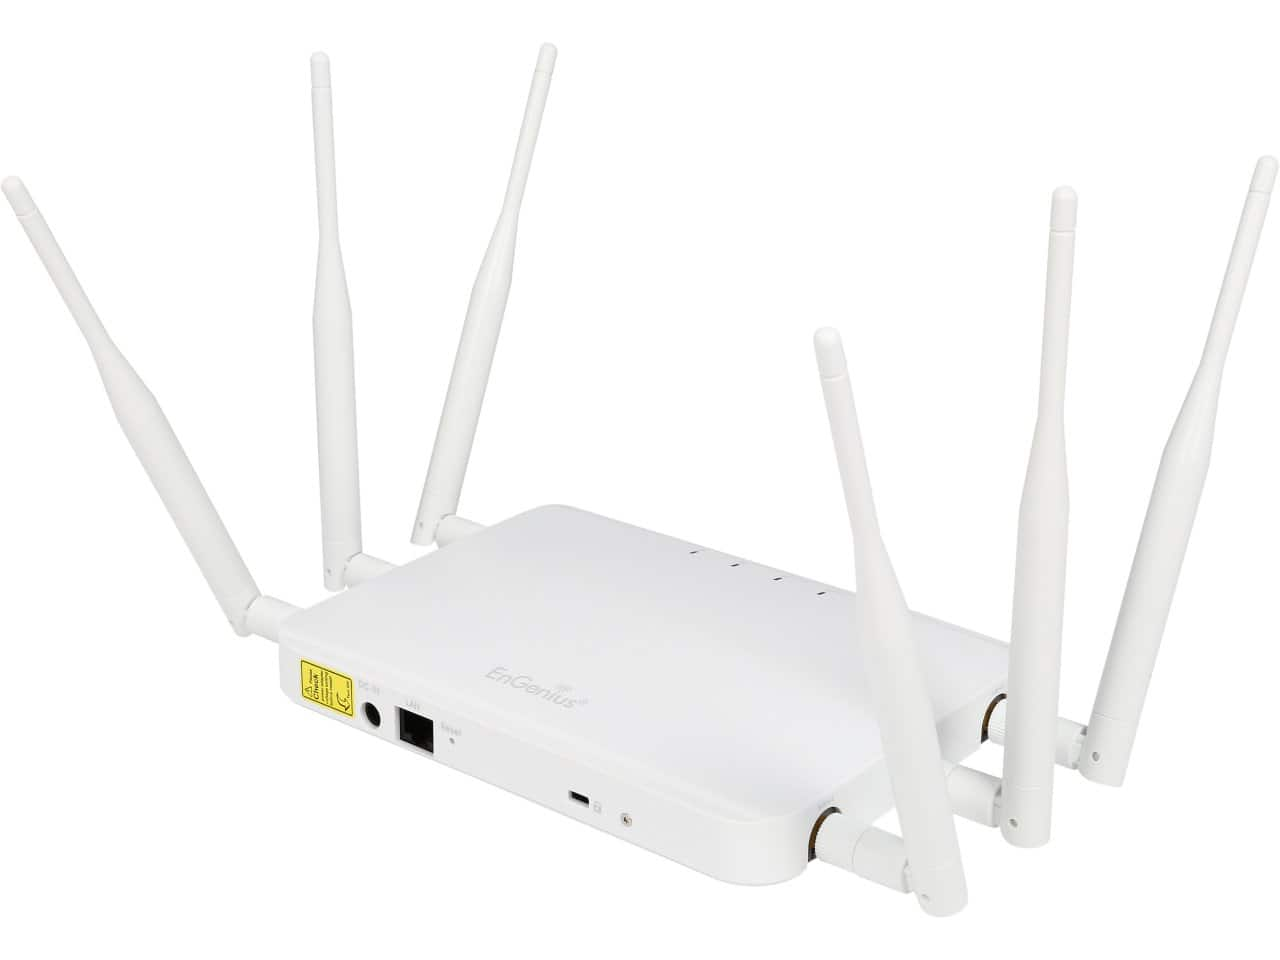 EnGenius ECB1750 AC1750 Dual-Band Gigabit Access Point for $99.99 AR, Asus RT-AC87U AC2400 Dual-Band Wireless Gigabit Router for $149.99 AR & More @ Newegg.com